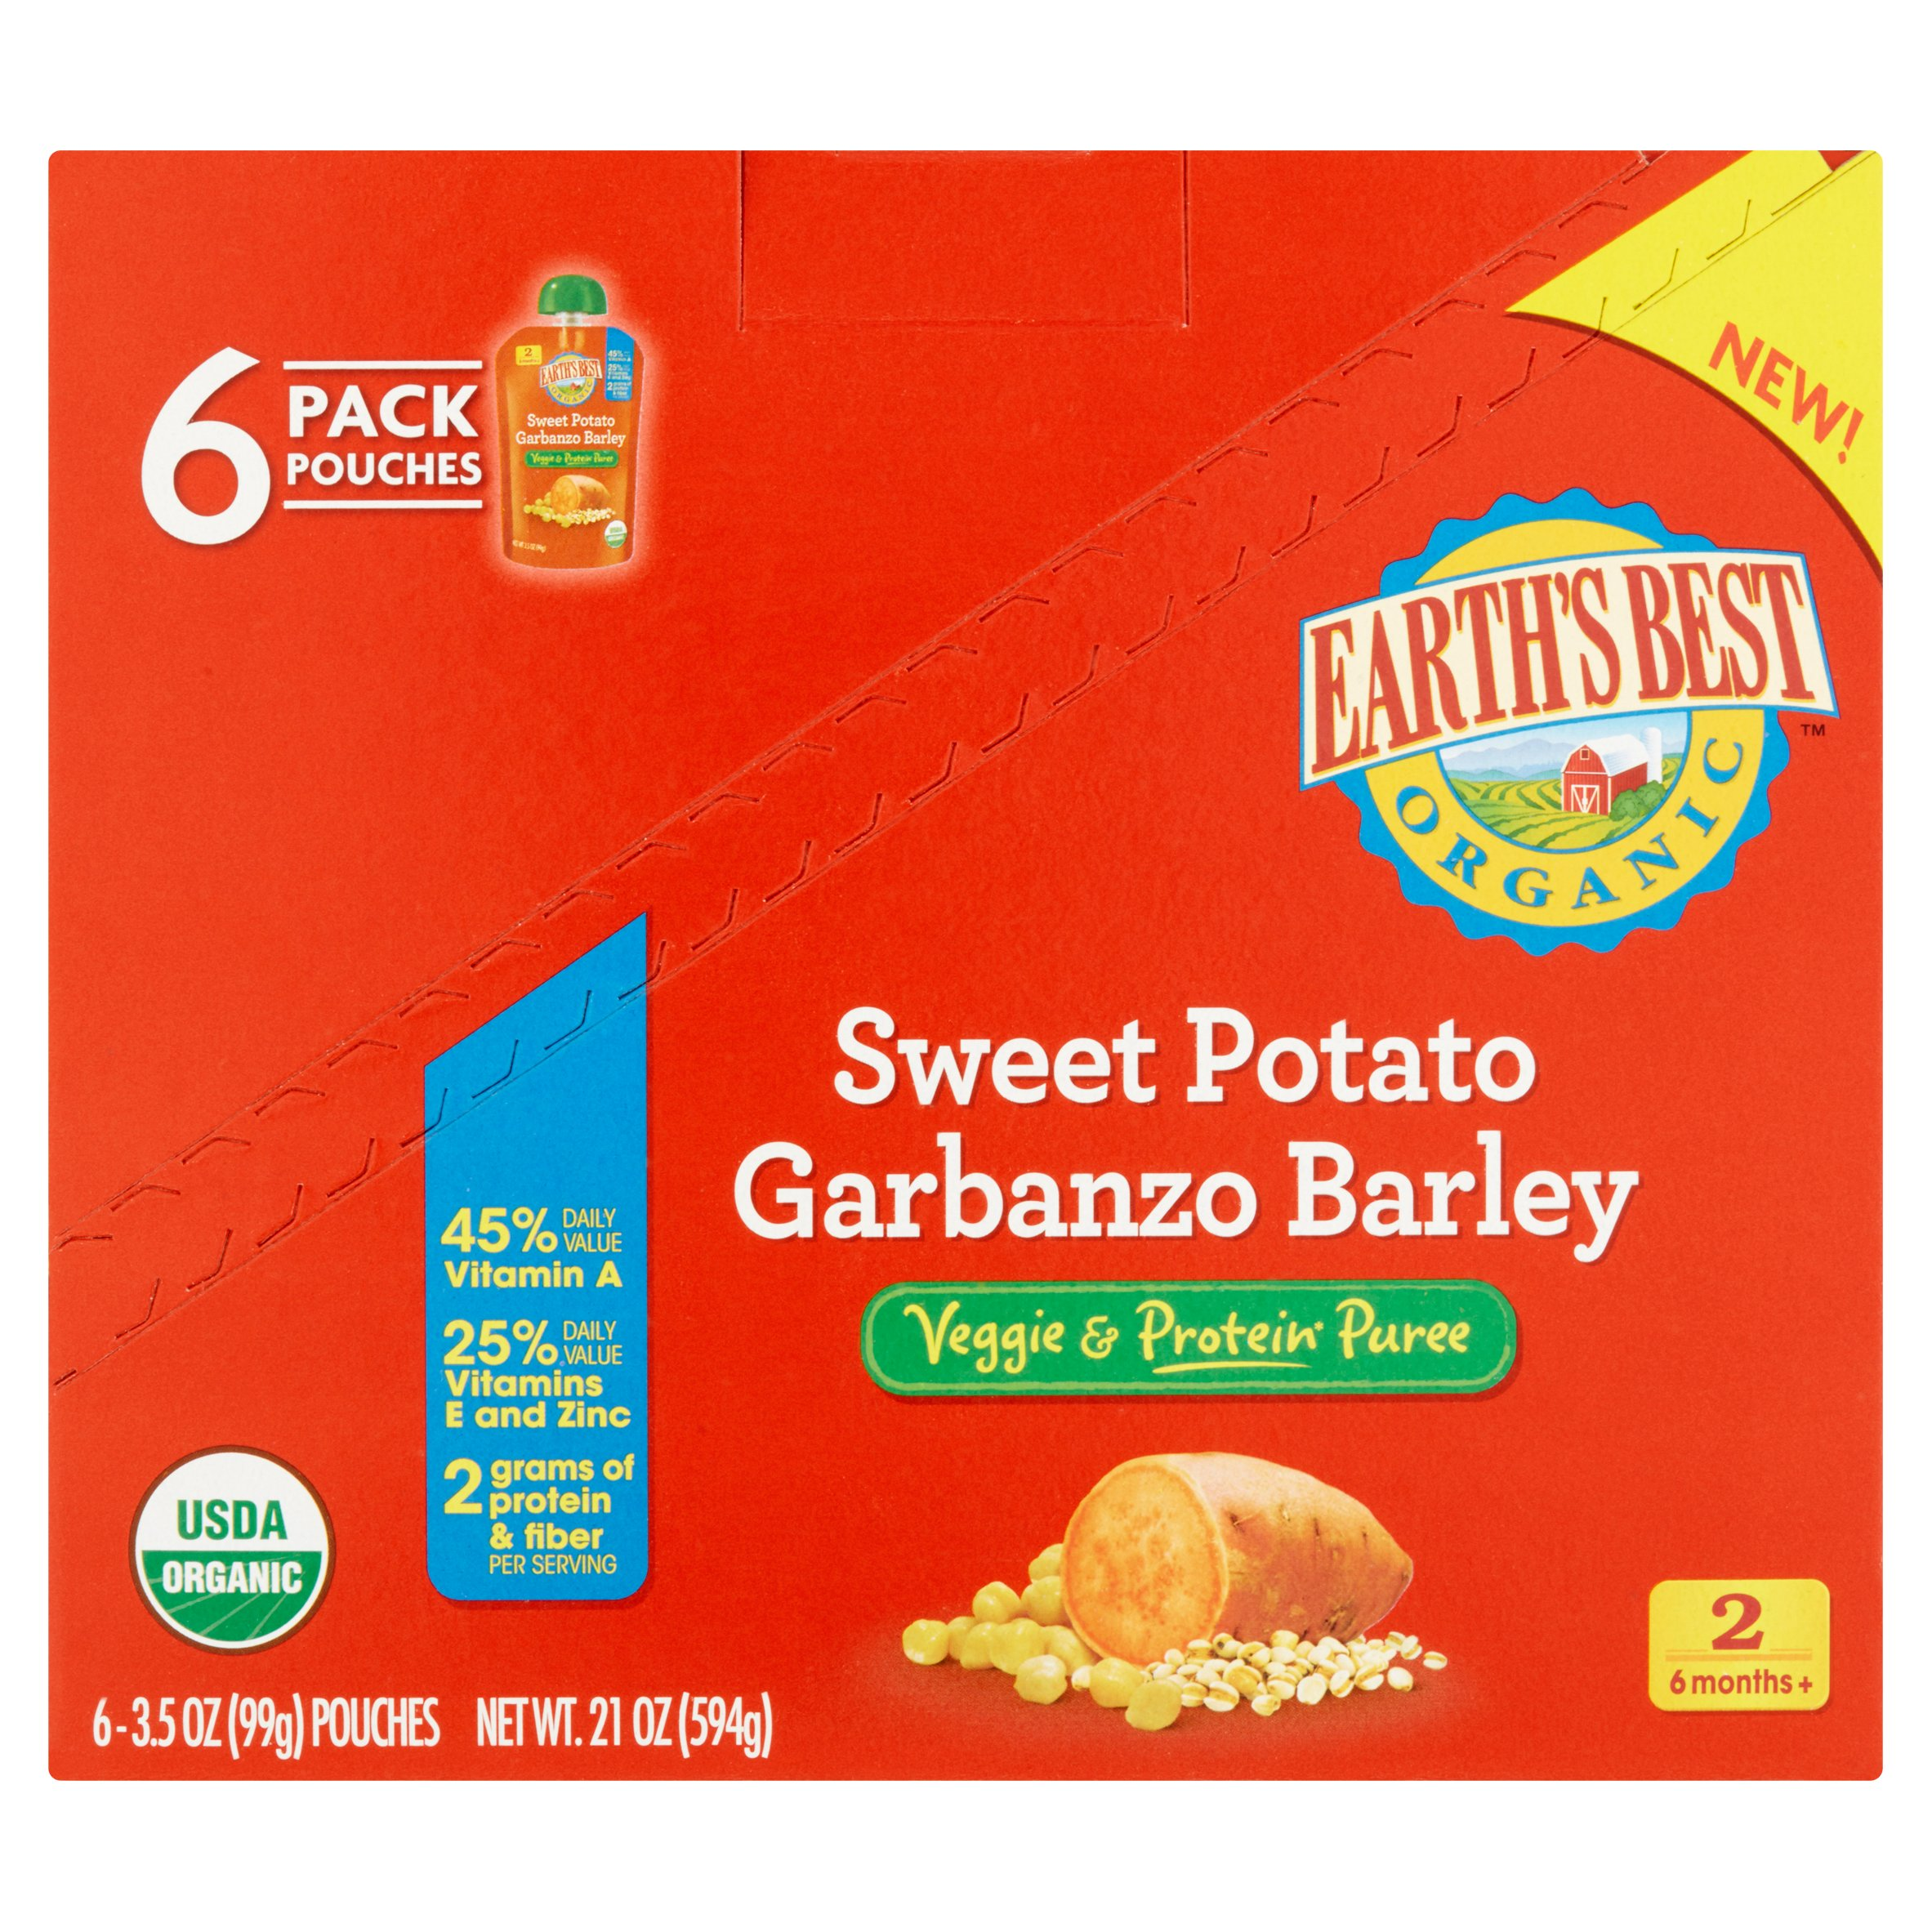 Earths Best Organic Baby Food Sweet Potato Garbanzo Barley Veggie & Protein Puree, 3.5 oz, 6 Pack